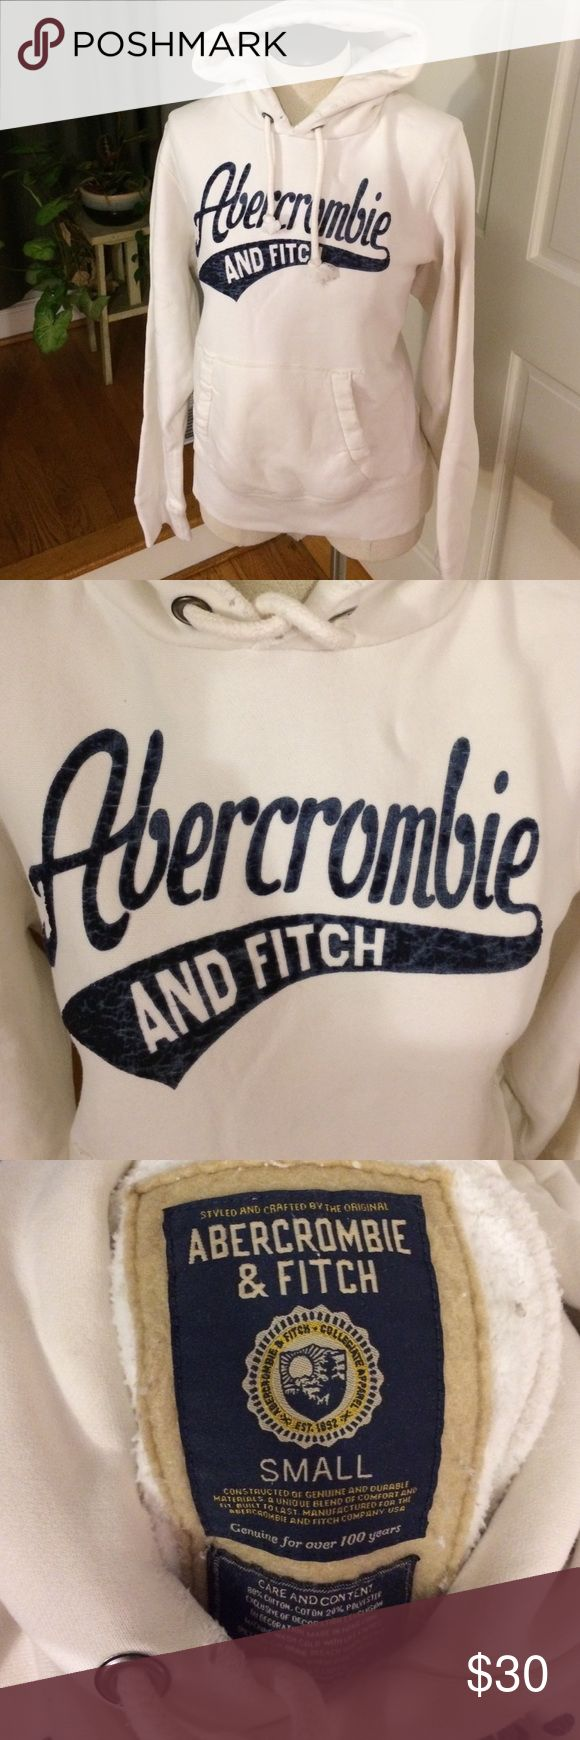 Abercrombie white & navy hoodie Abercrombie & Fitch white & navy hoodie. In excellent used condition- there are distressed areas consistent with the Abercrombie style that was purchased that way. This is a small, but it fits like a medium or large (by Abercrombie's standards) so it might be a men's small but I think it looks great as a women's hoodie. Abercrombie & Fitch Tops Sweatshirts & Hoodies